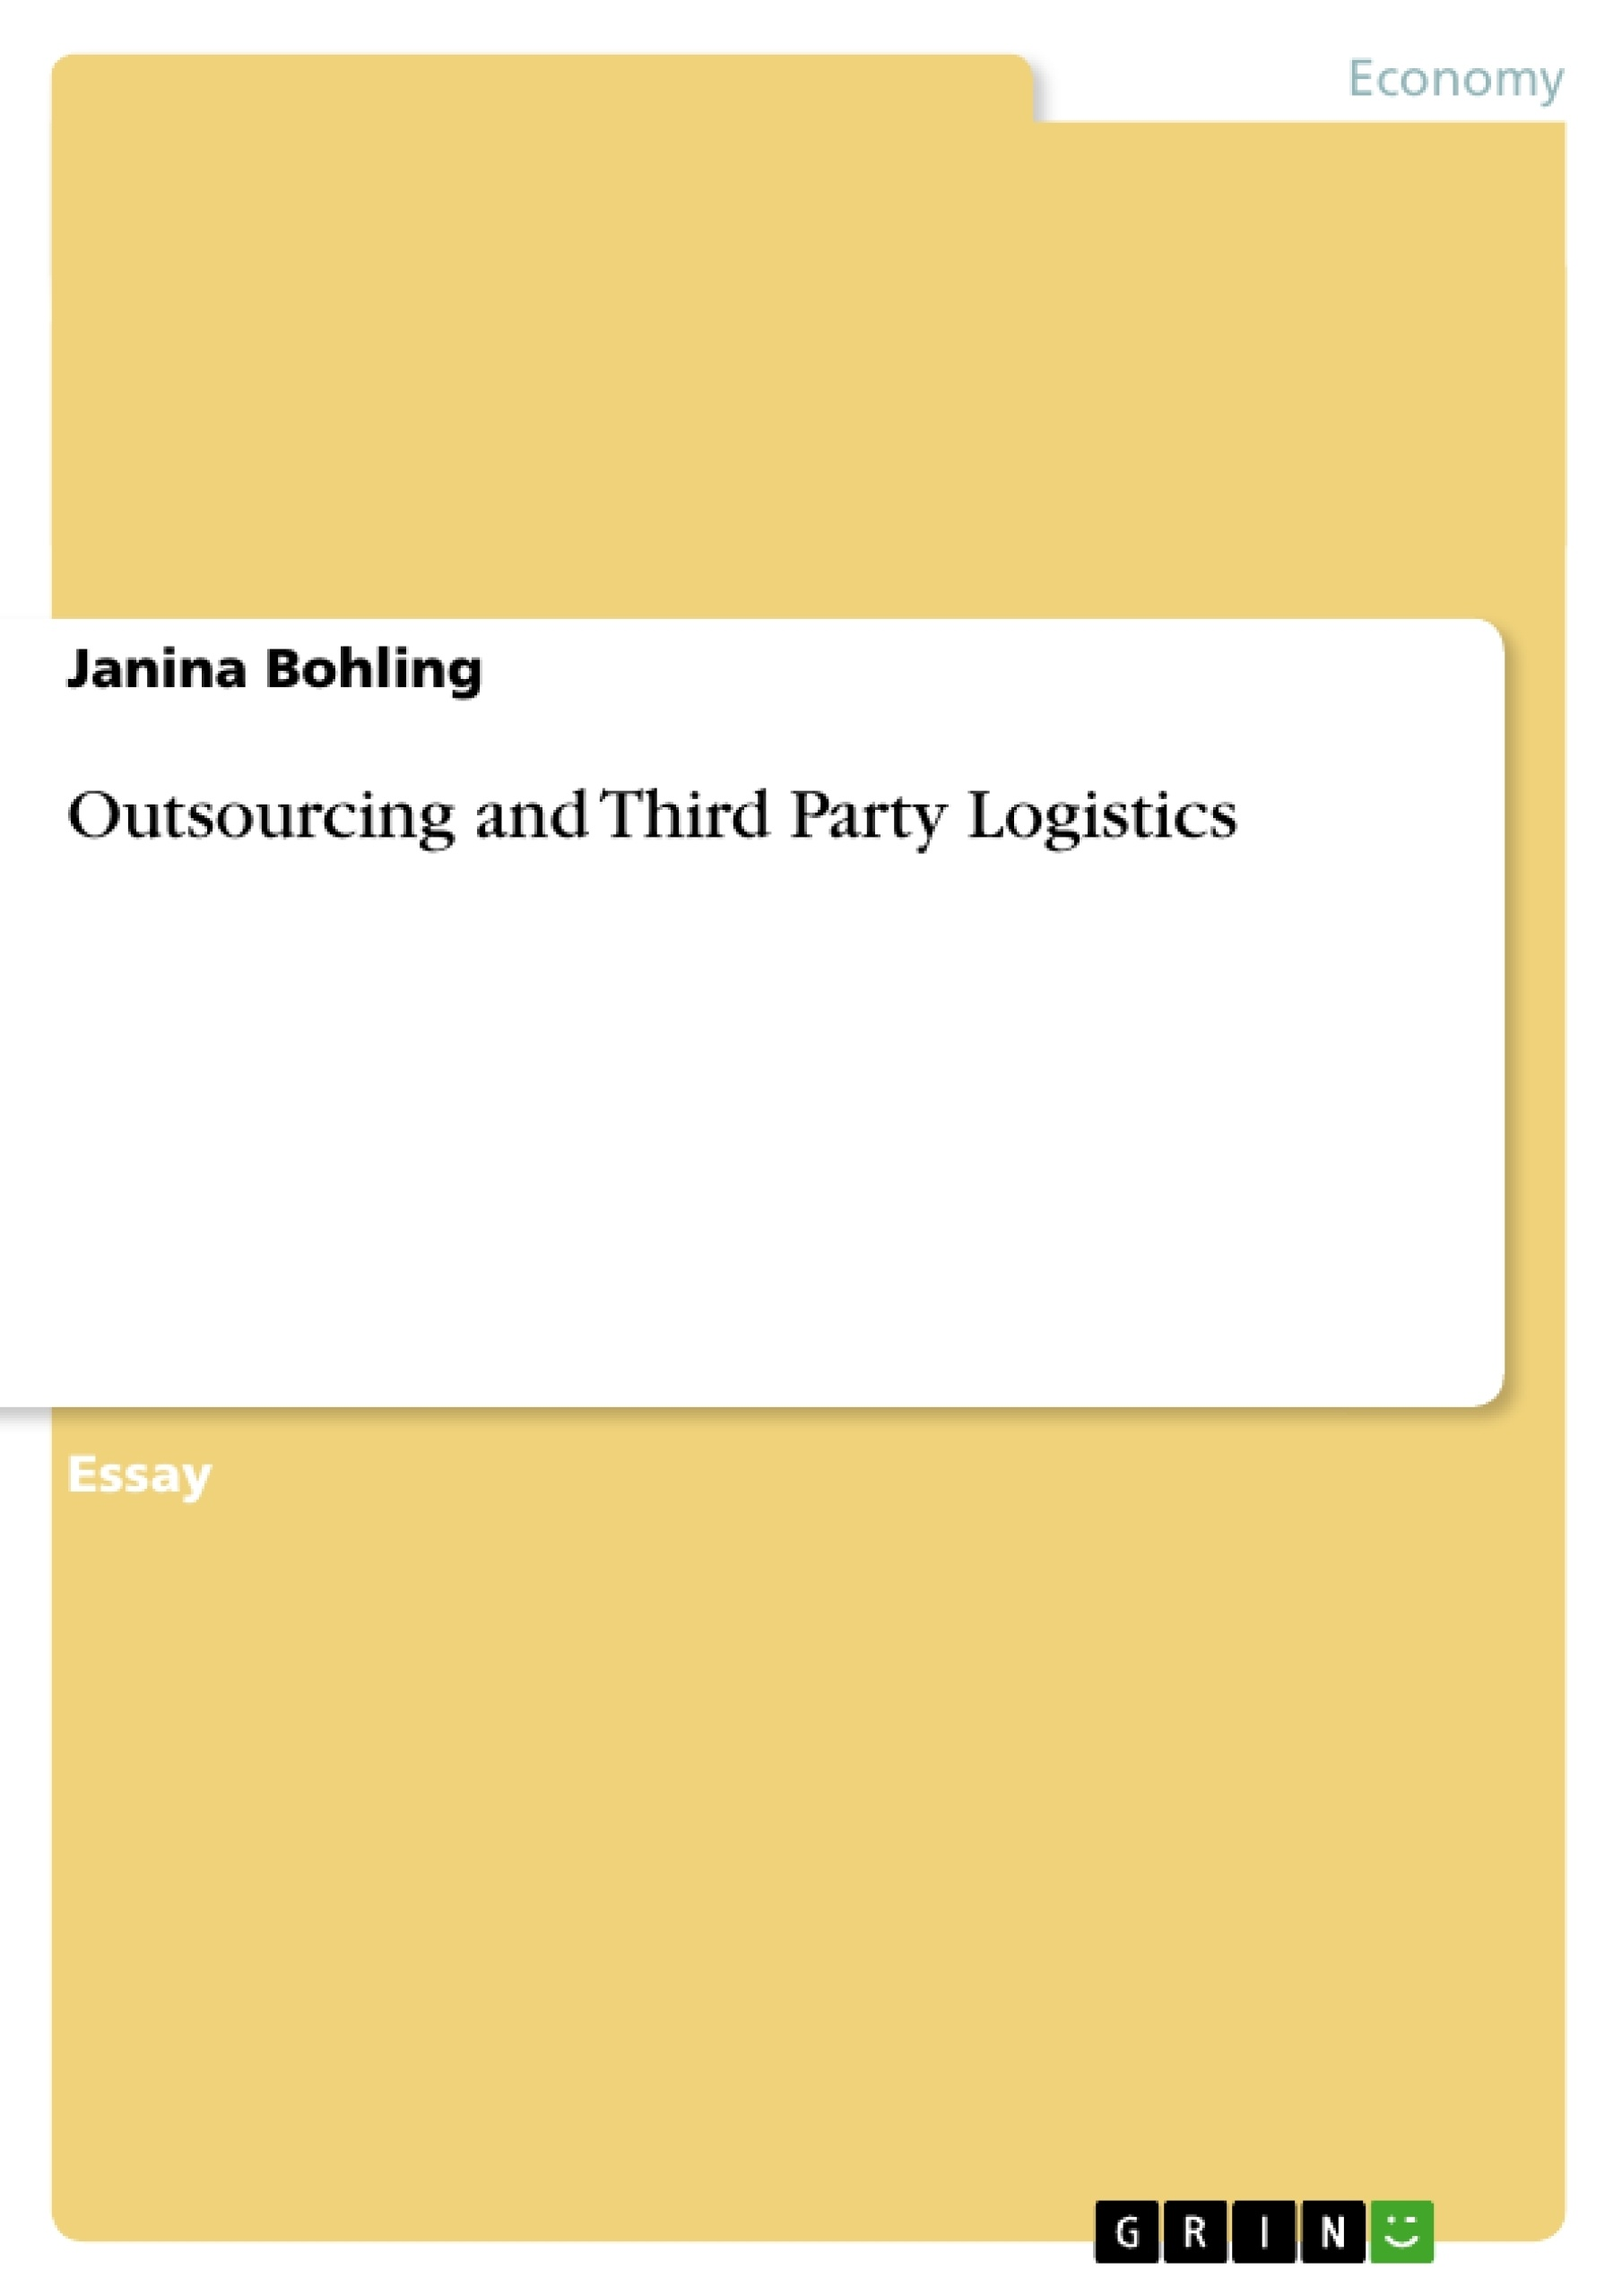 Title: Outsourcing and Third Party Logistics